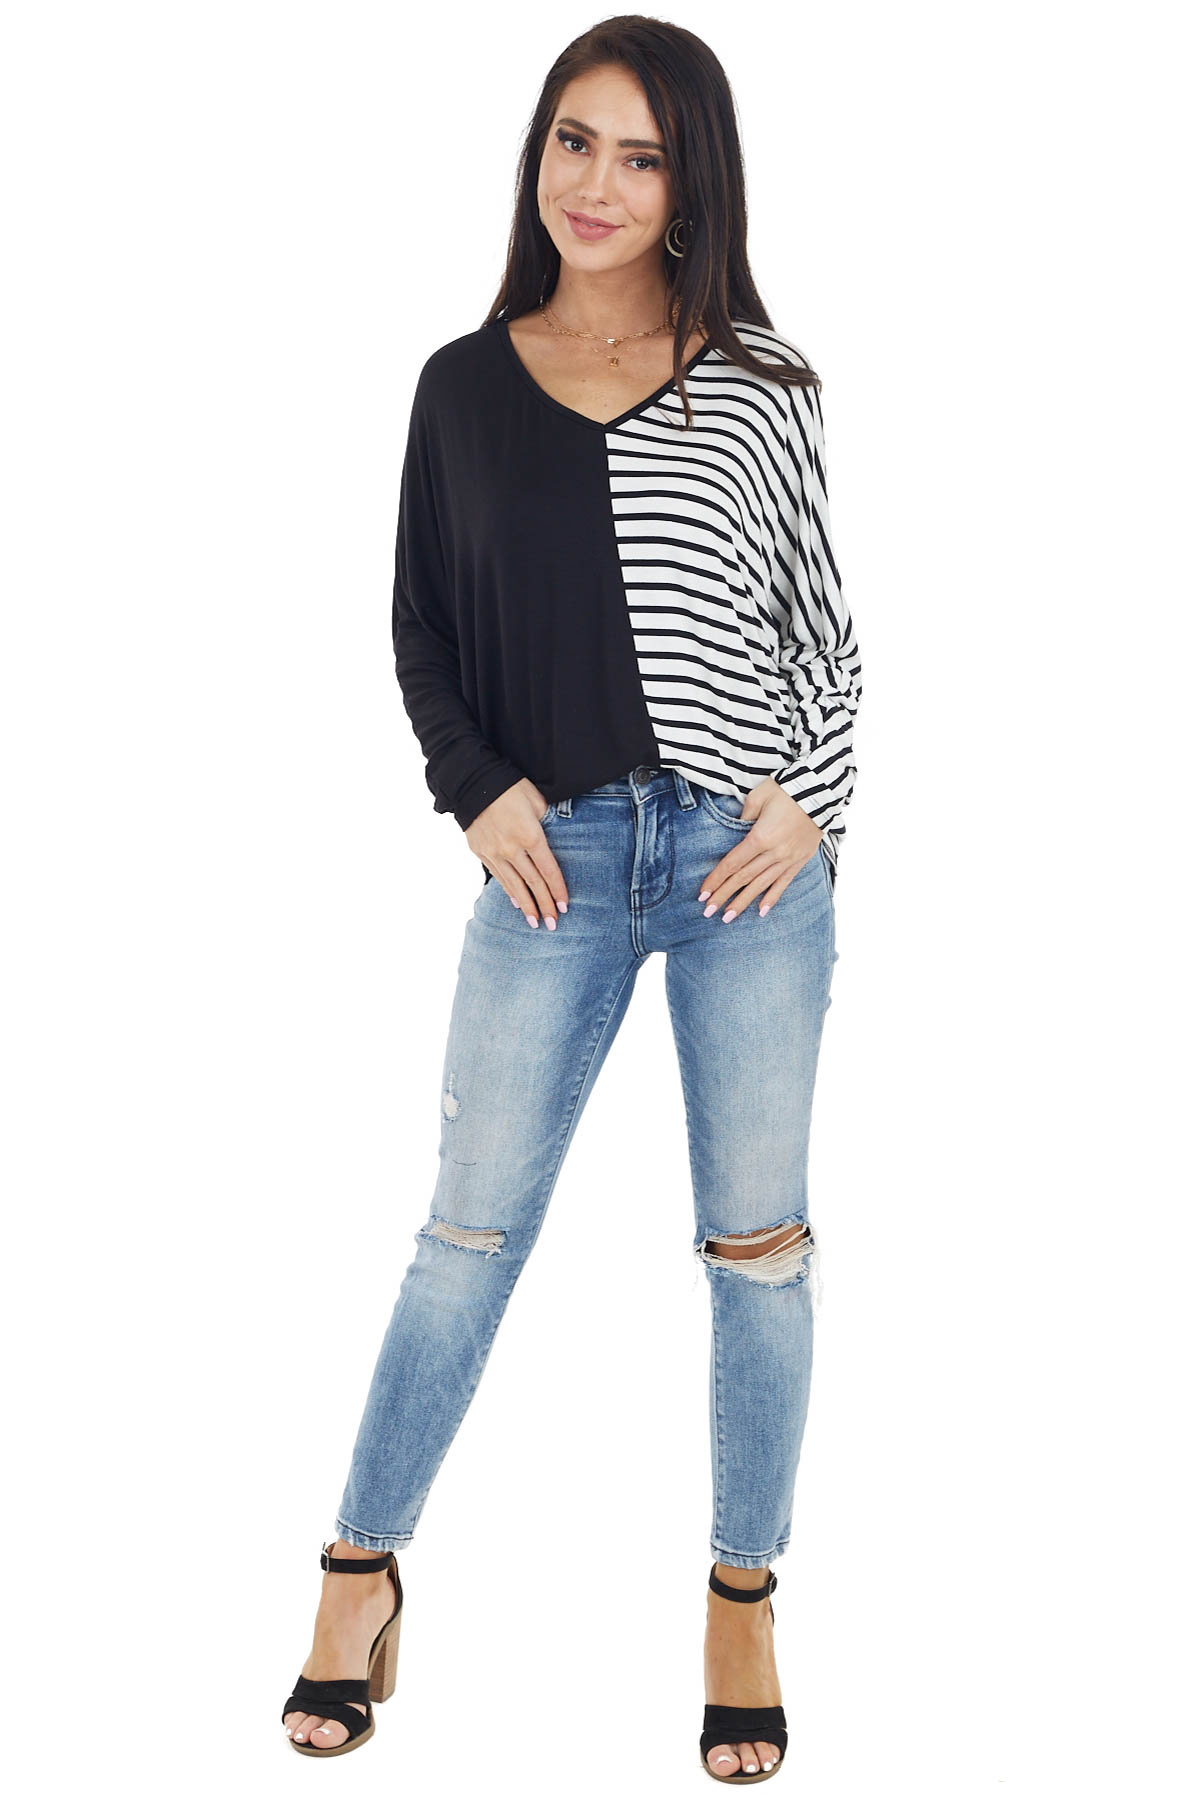 Black Long Dolman Sleeve Top with Striped Contrast